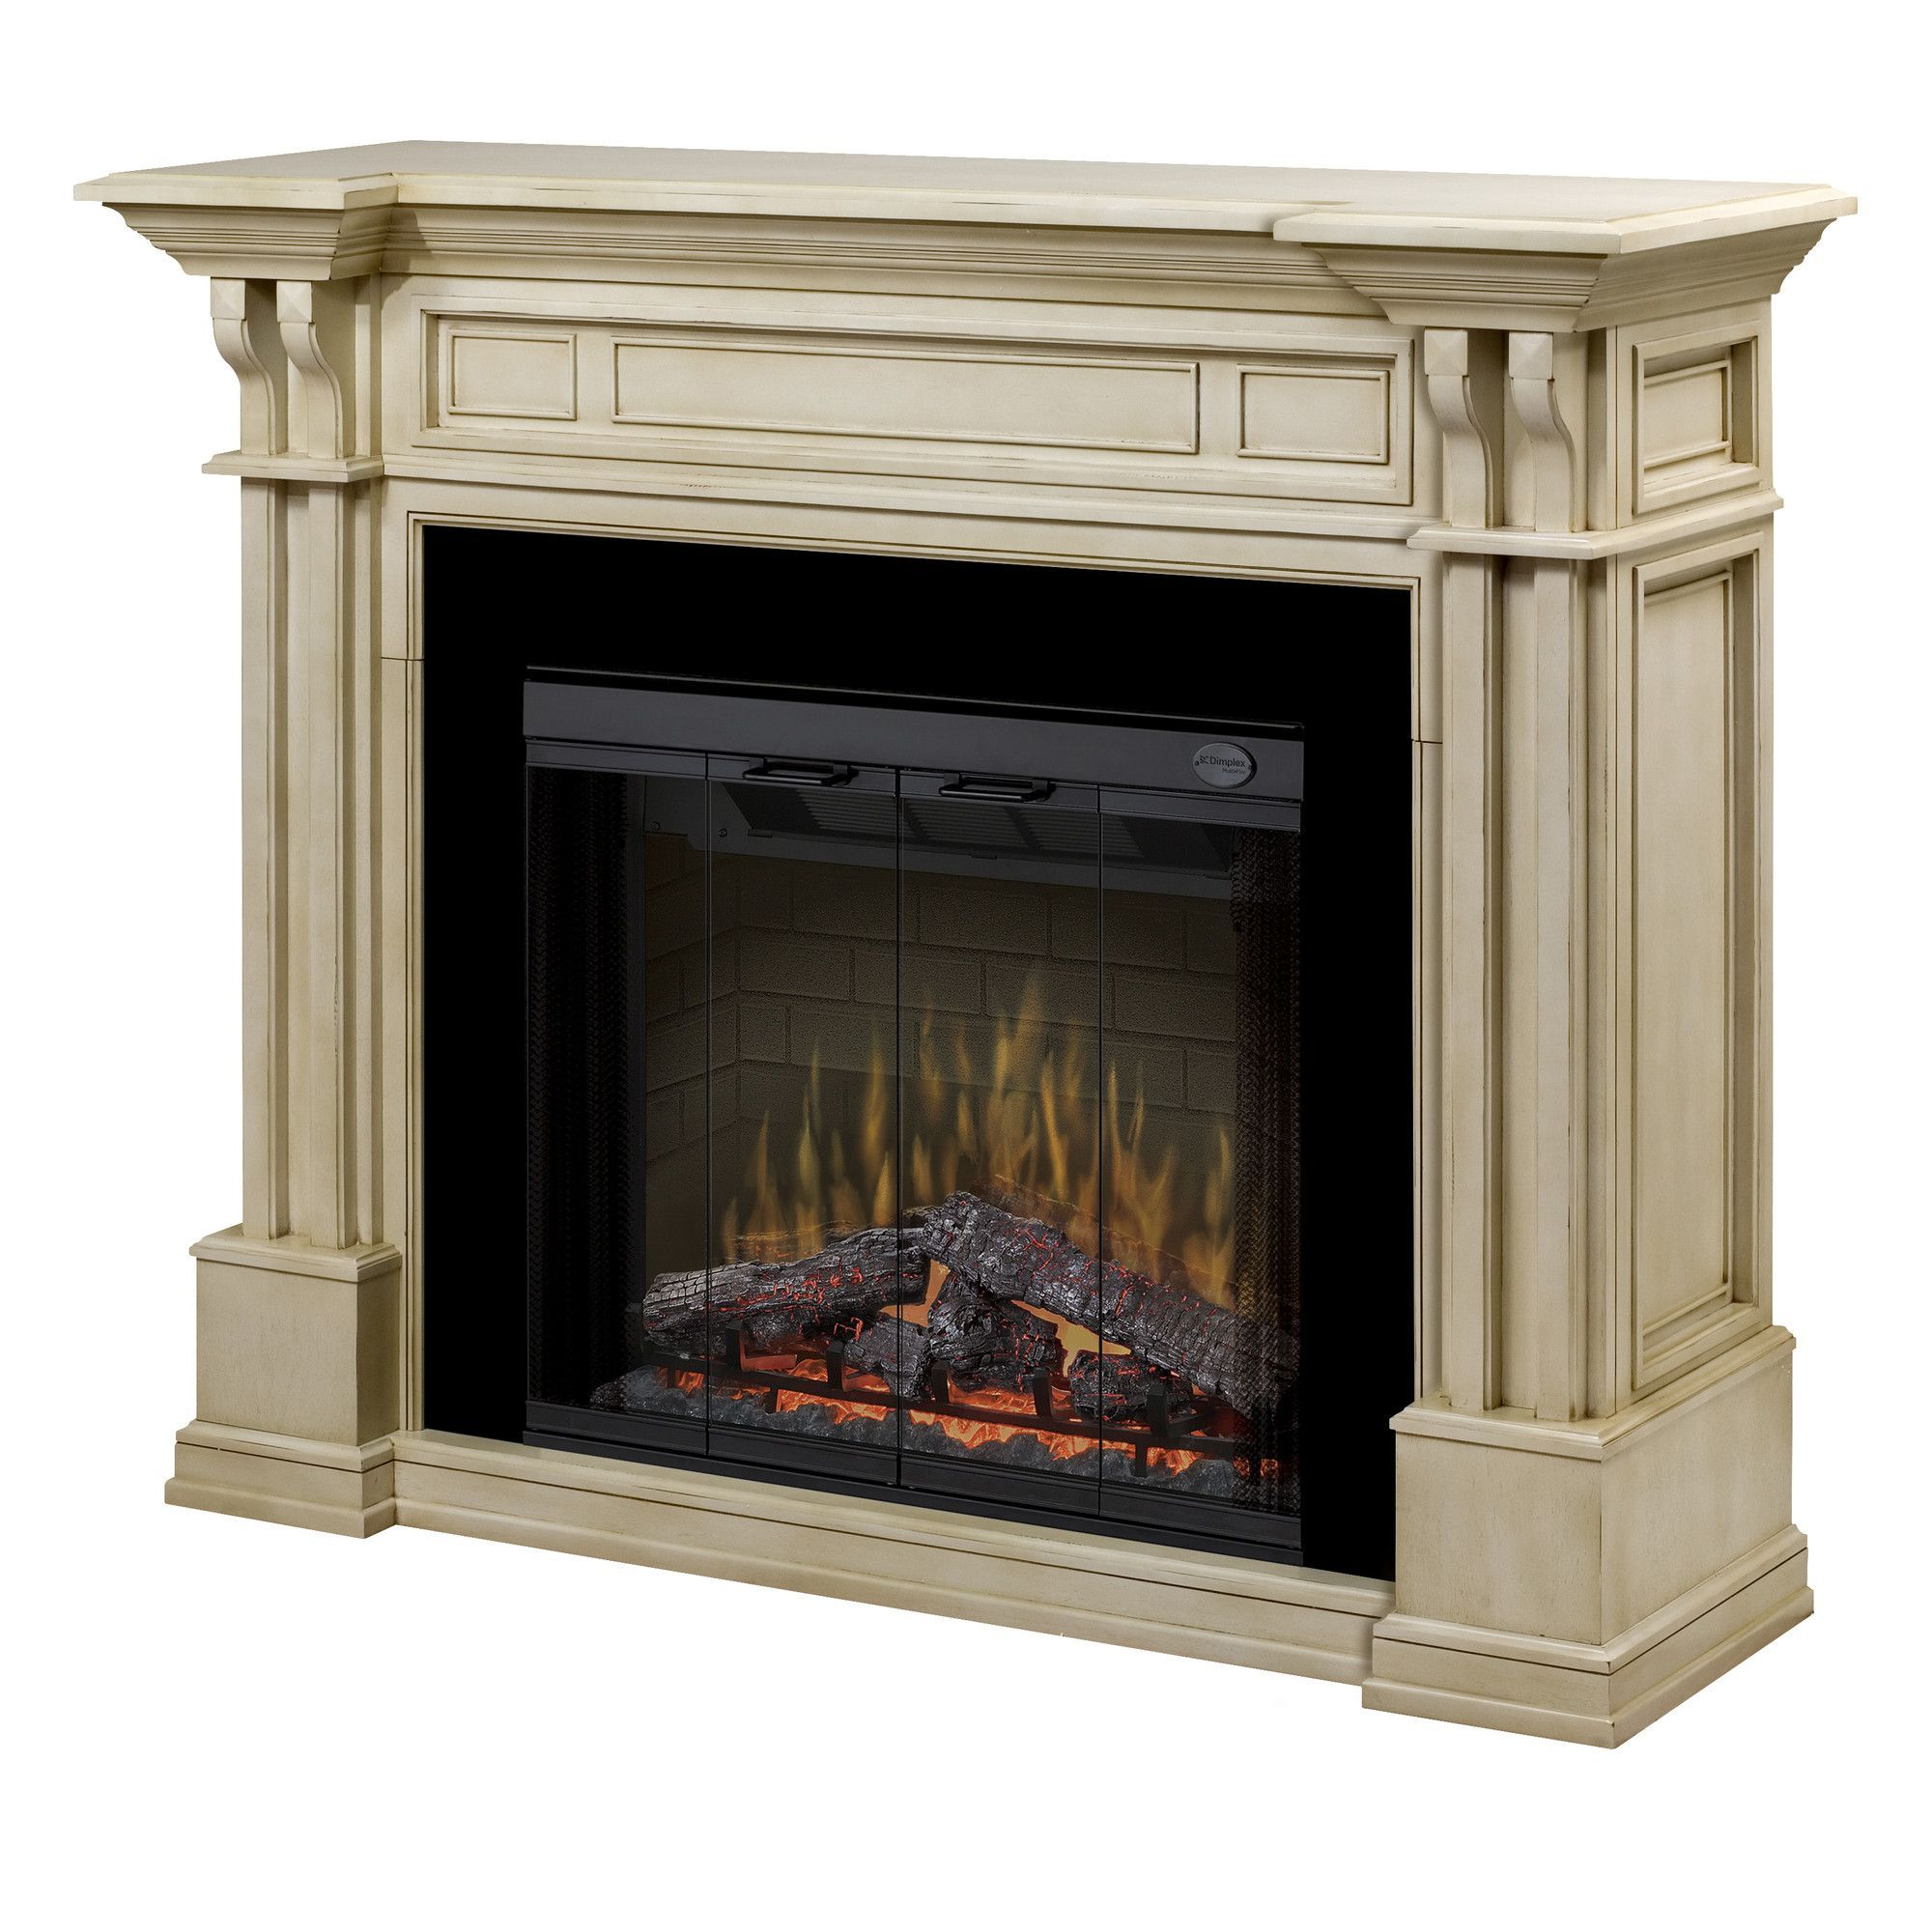 Fireplace Mantel Parts Pin By Sandra On Fireplaces In 2019 Dimplex Electric Fireplace